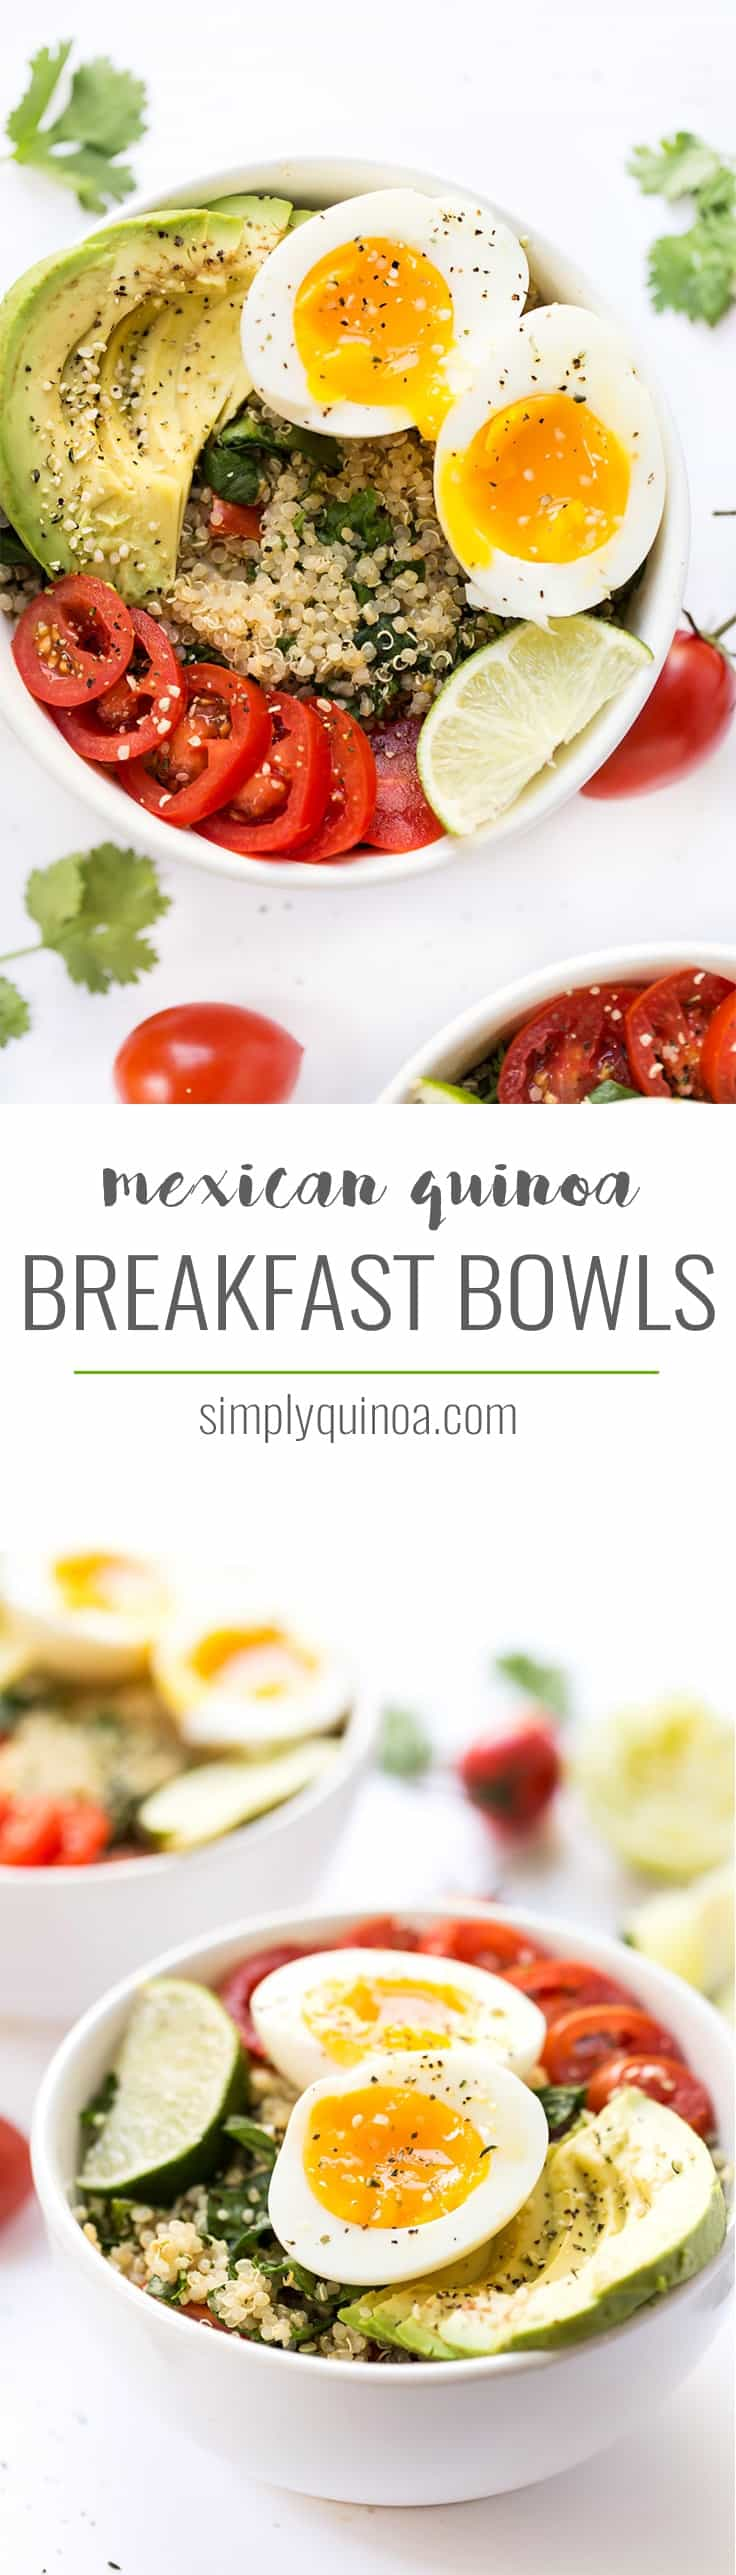 These Mexican Quinoa Breakfast Bowls are the perfect way to start your day! Protein-packed, with creamy avocado, cilantro-lime quinoa and soft boiled eggs!